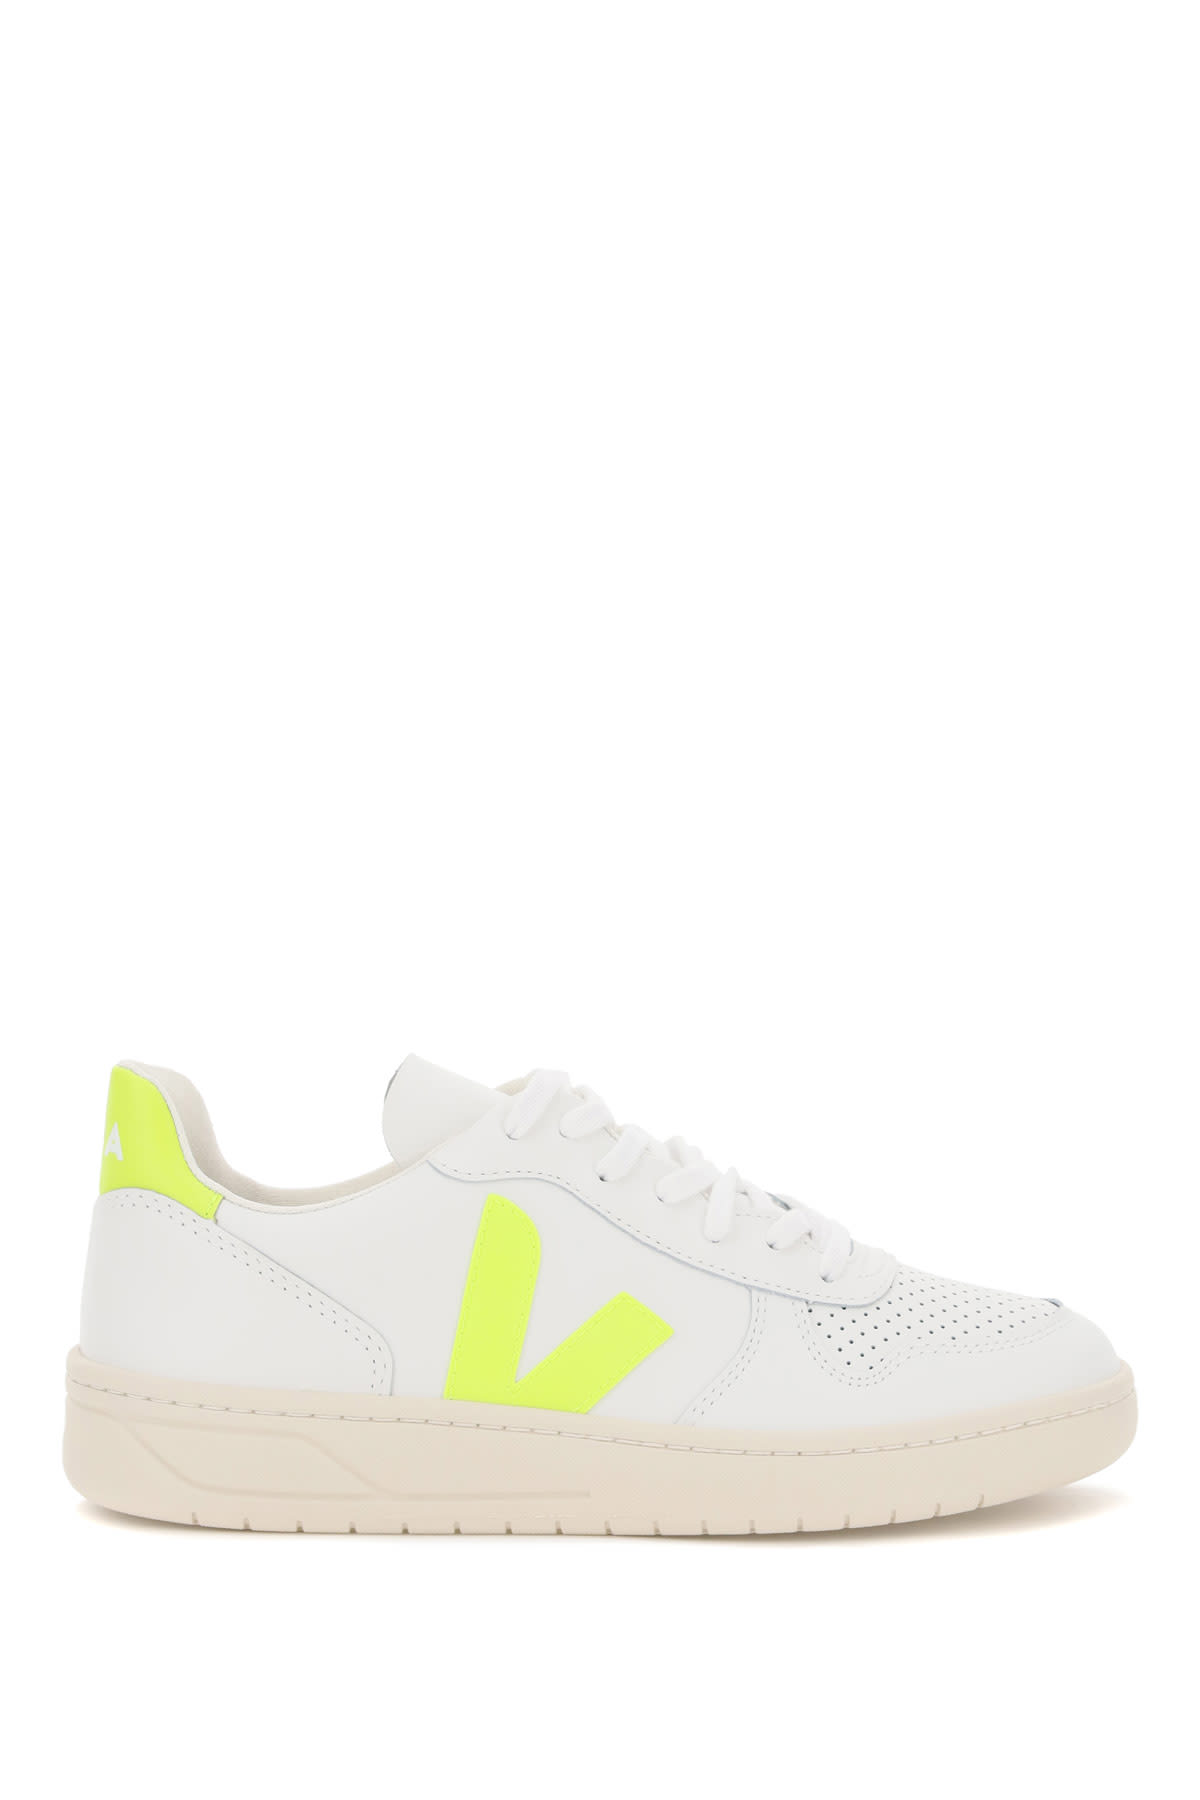 Veja Shoes V-10 LEATHER SNEAKERS